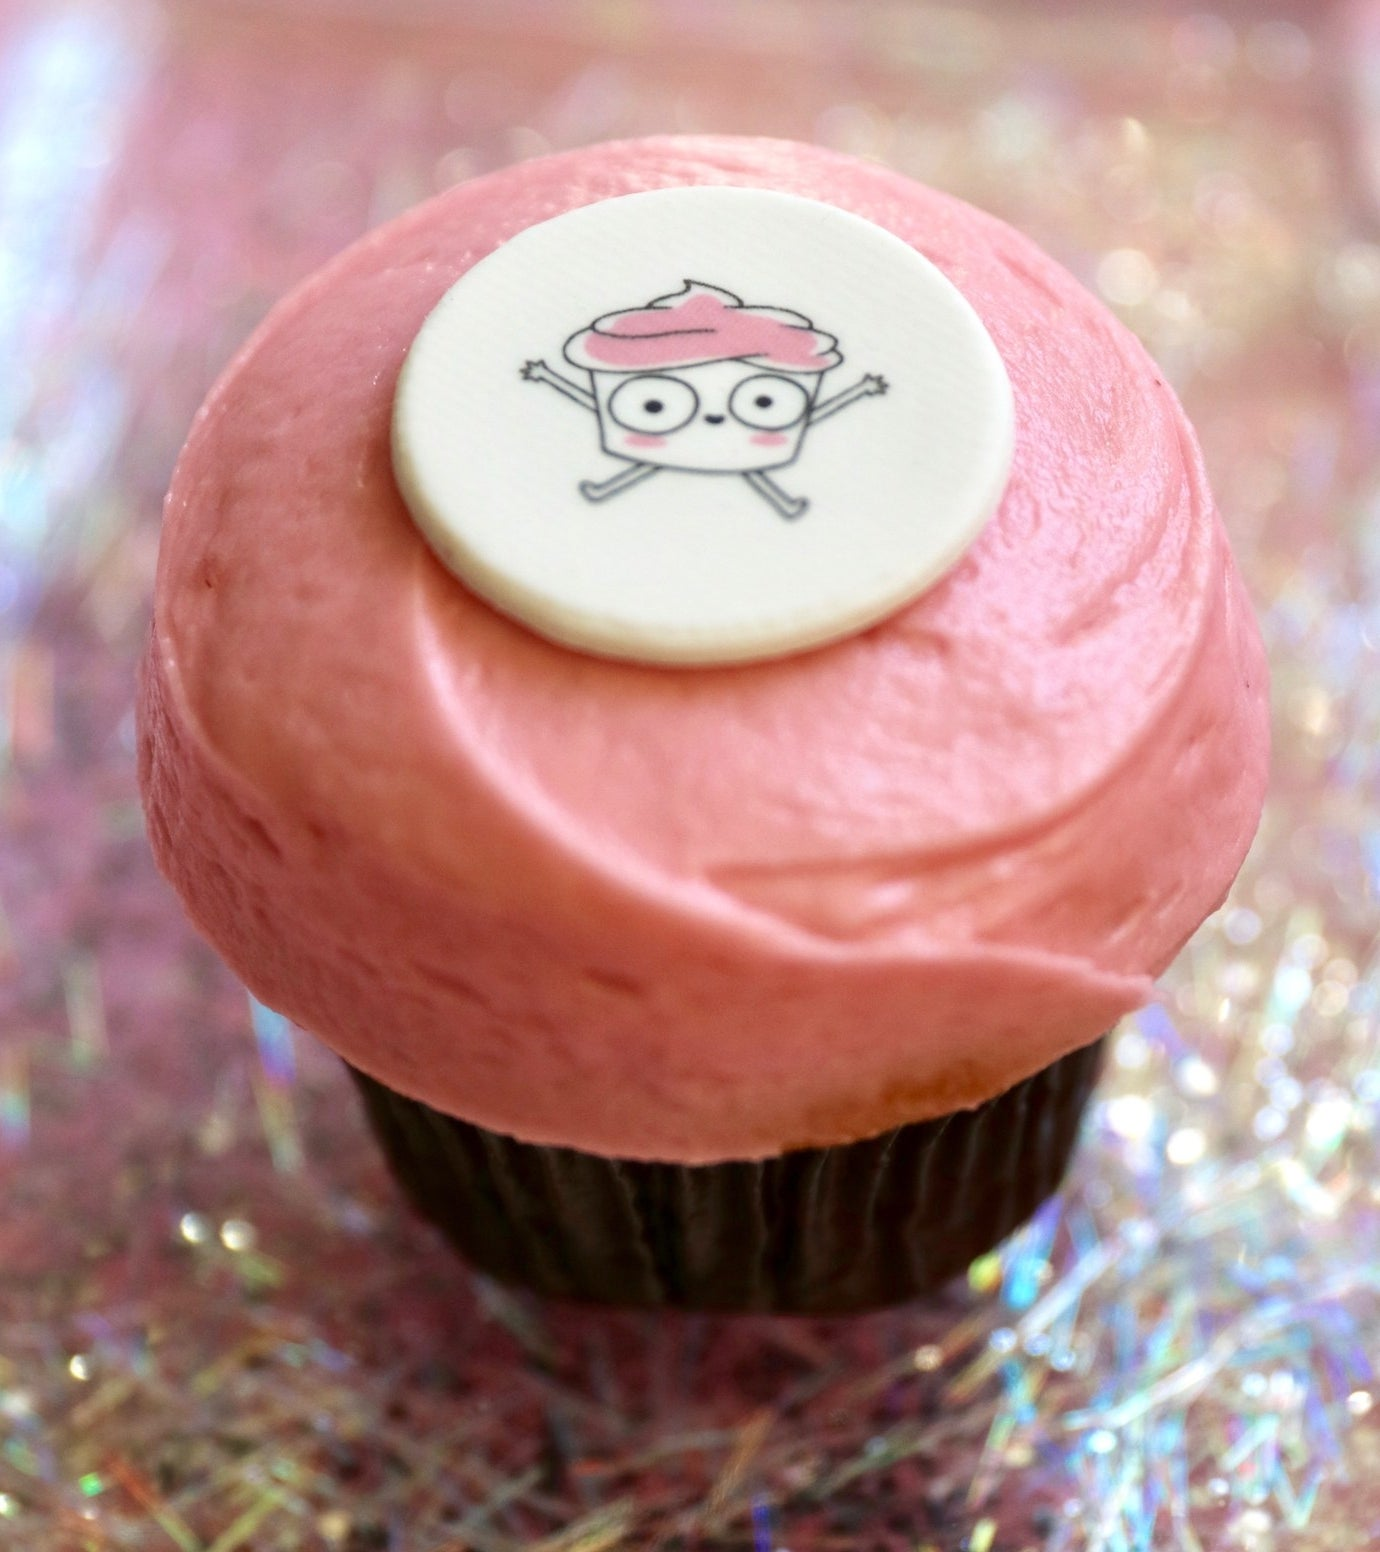 Perhaps the most Instagrammable cupcake ever?